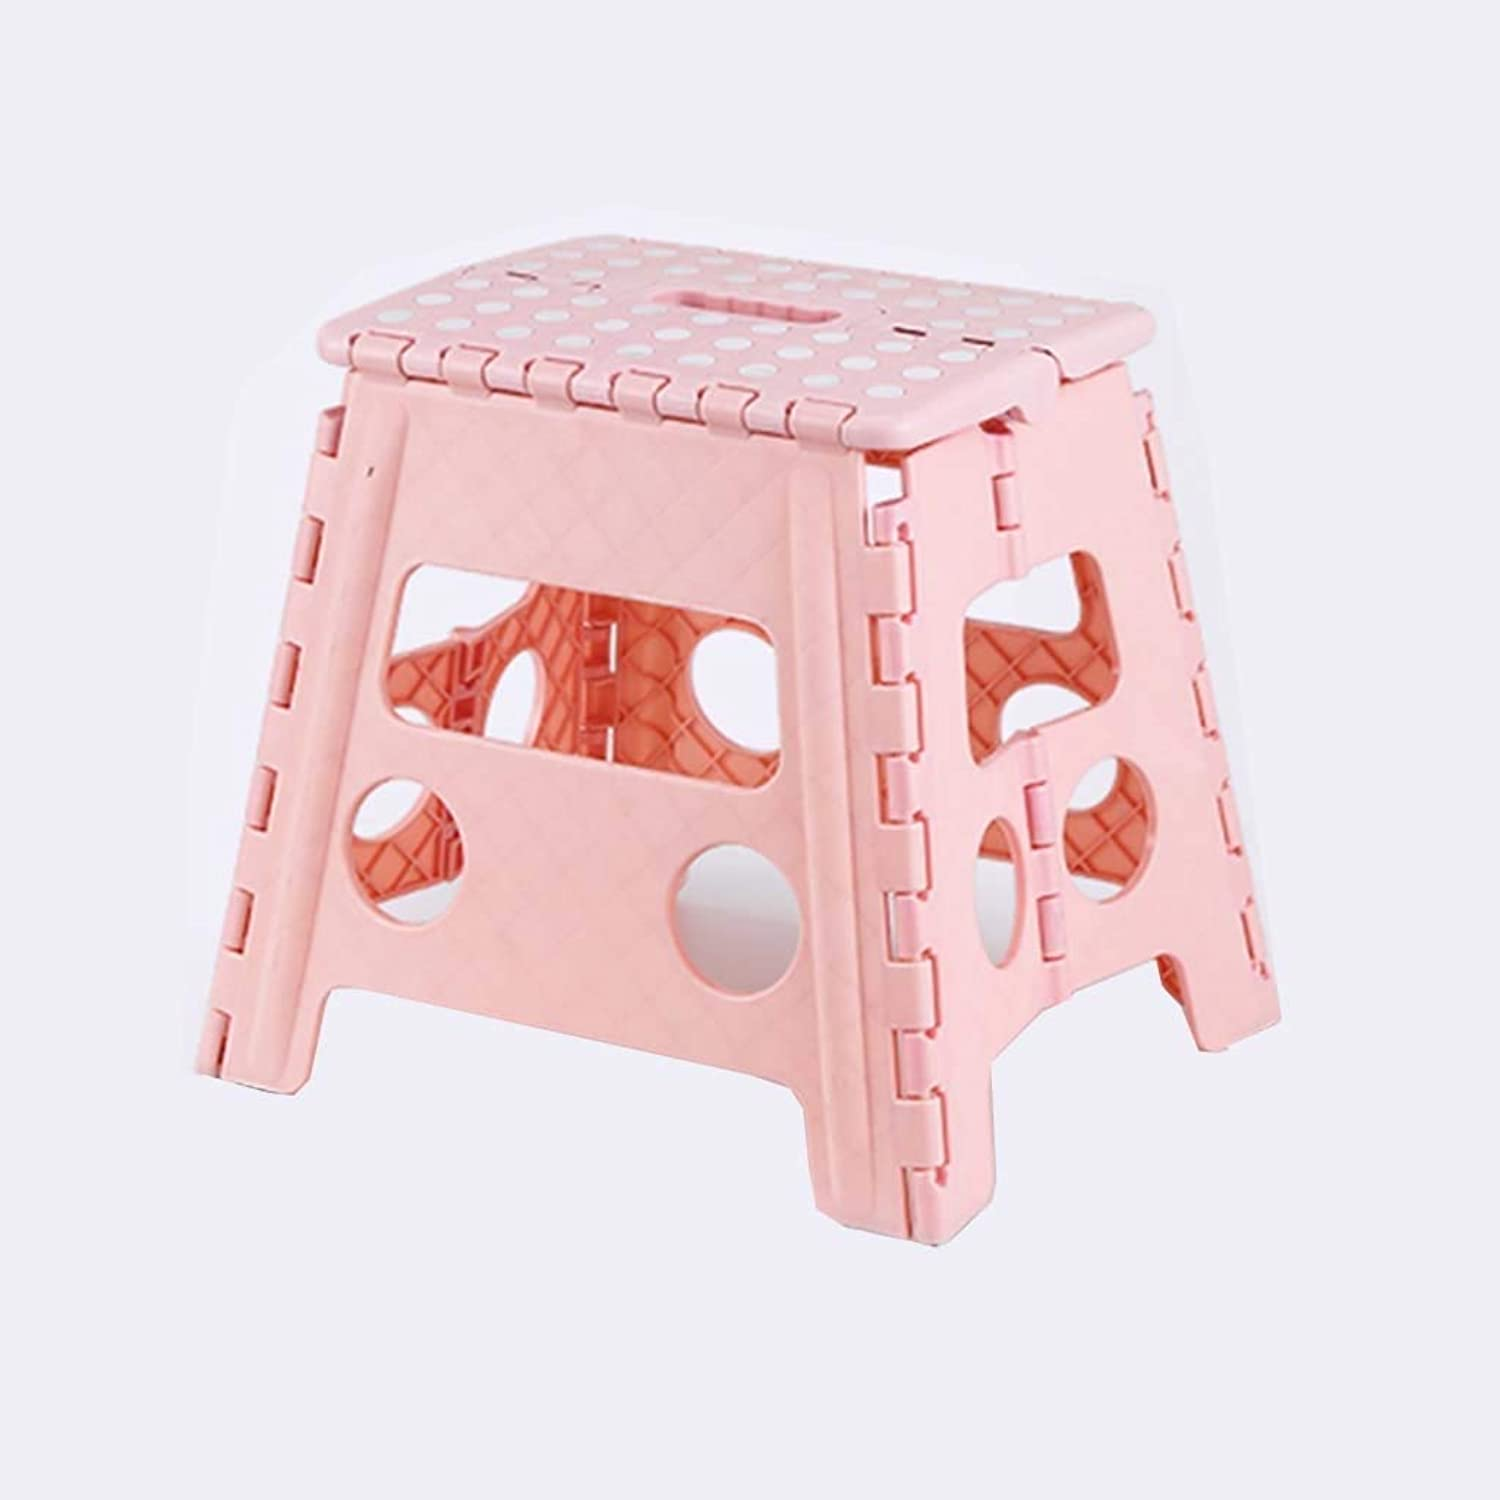 Stools Heavy Duty Folding Step Stool – Strong Compact Plastic Anti Slip Stepping Stool for Kids and Adults with Carry Handle for Home, Kitchen and Workplace Stools (Size   XXXL)